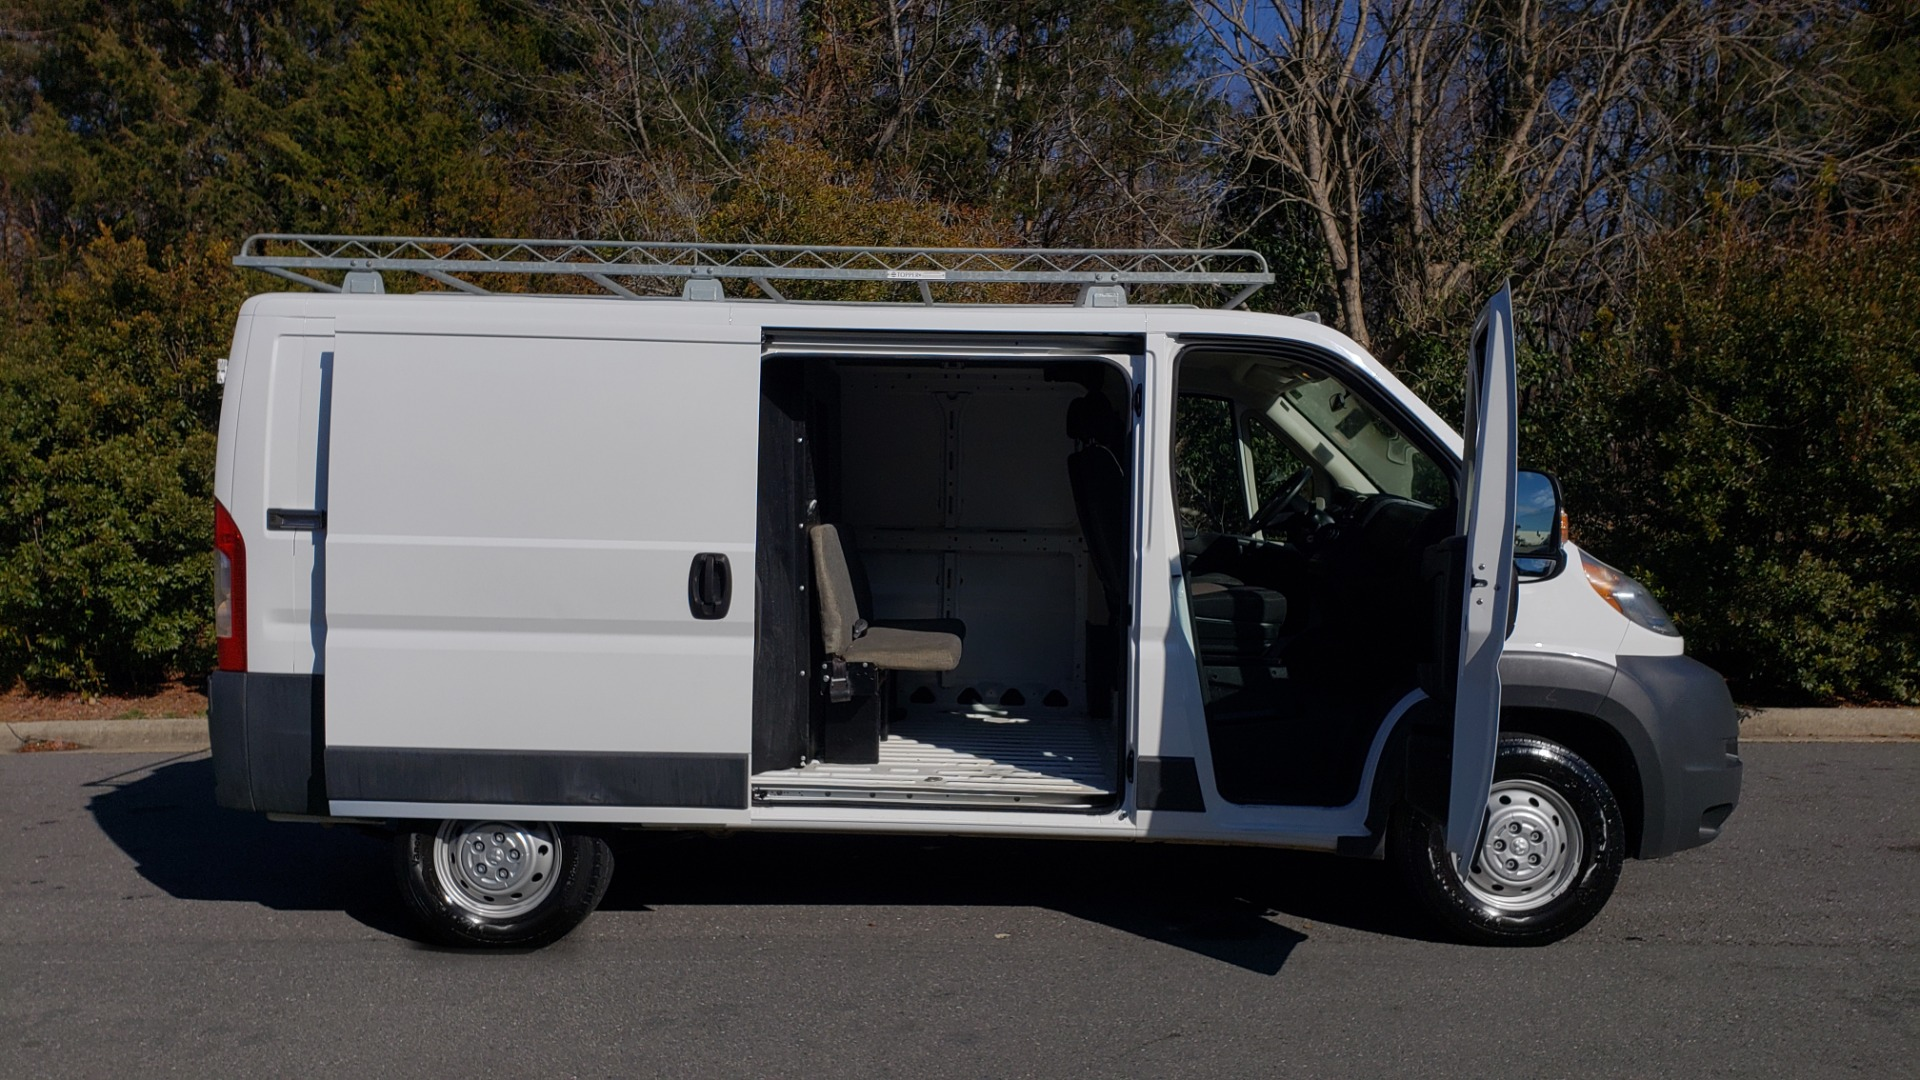 Used 2016 Ram PROMASTER CARGO VAN 136 WB / LOW ROOF / 3.6L V6 / 6-SPD AUTO / REARVIEW for sale $21,000 at Formula Imports in Charlotte NC 28227 12